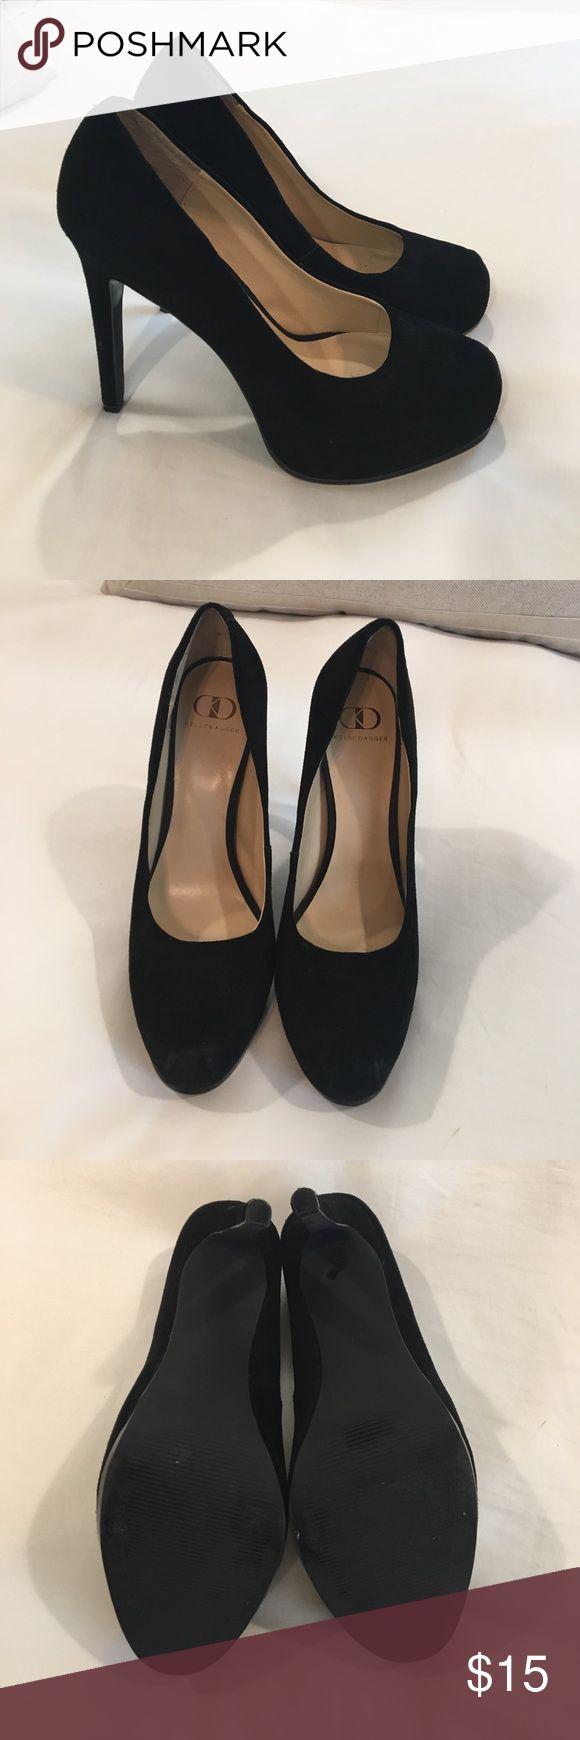 """Kelsi Dagger black suede pumps Kelsi Dagger black suede pumps, 4"""" heel, worn once and in great condition. Few small rubs on back of the heel as shown in picture. Size 10. Smoke free home. Kelsi Dagger Shoes Heels"""